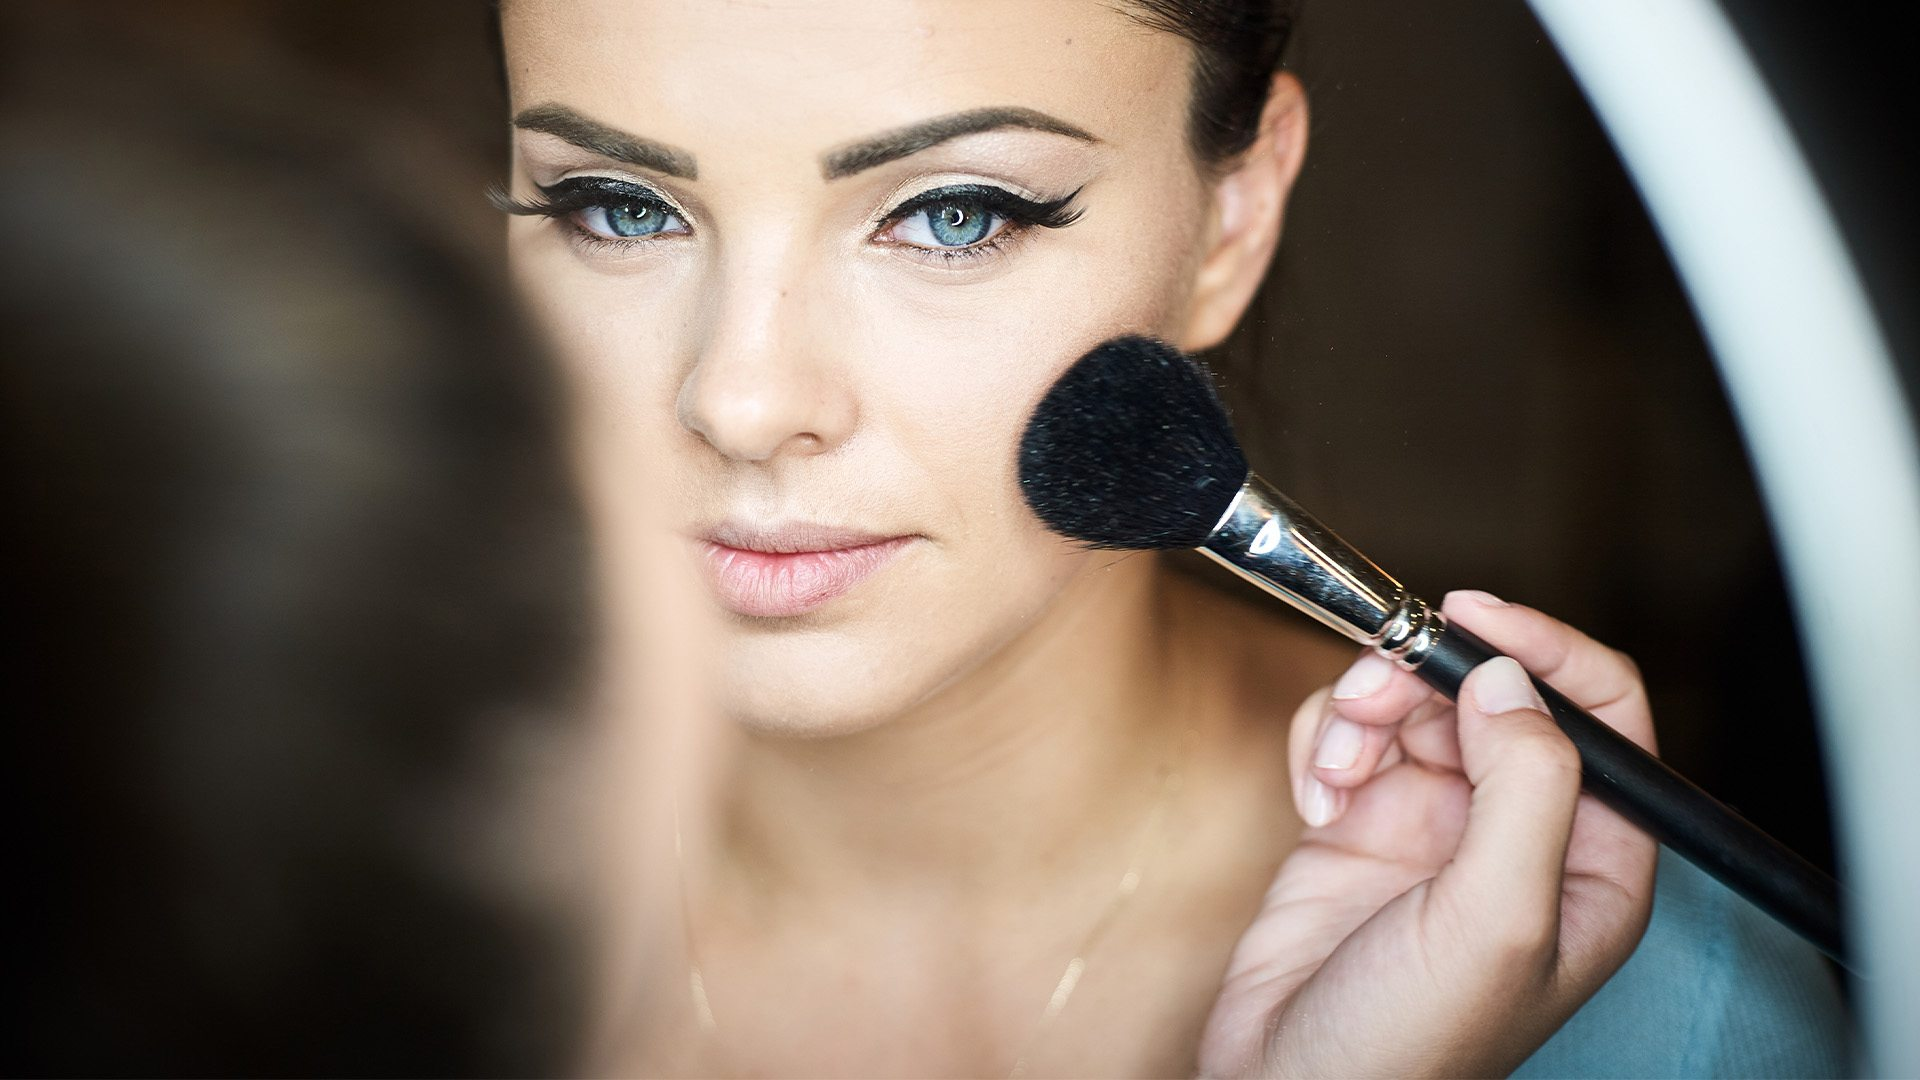 Beauty Items - Used Makeup with beautifull girl